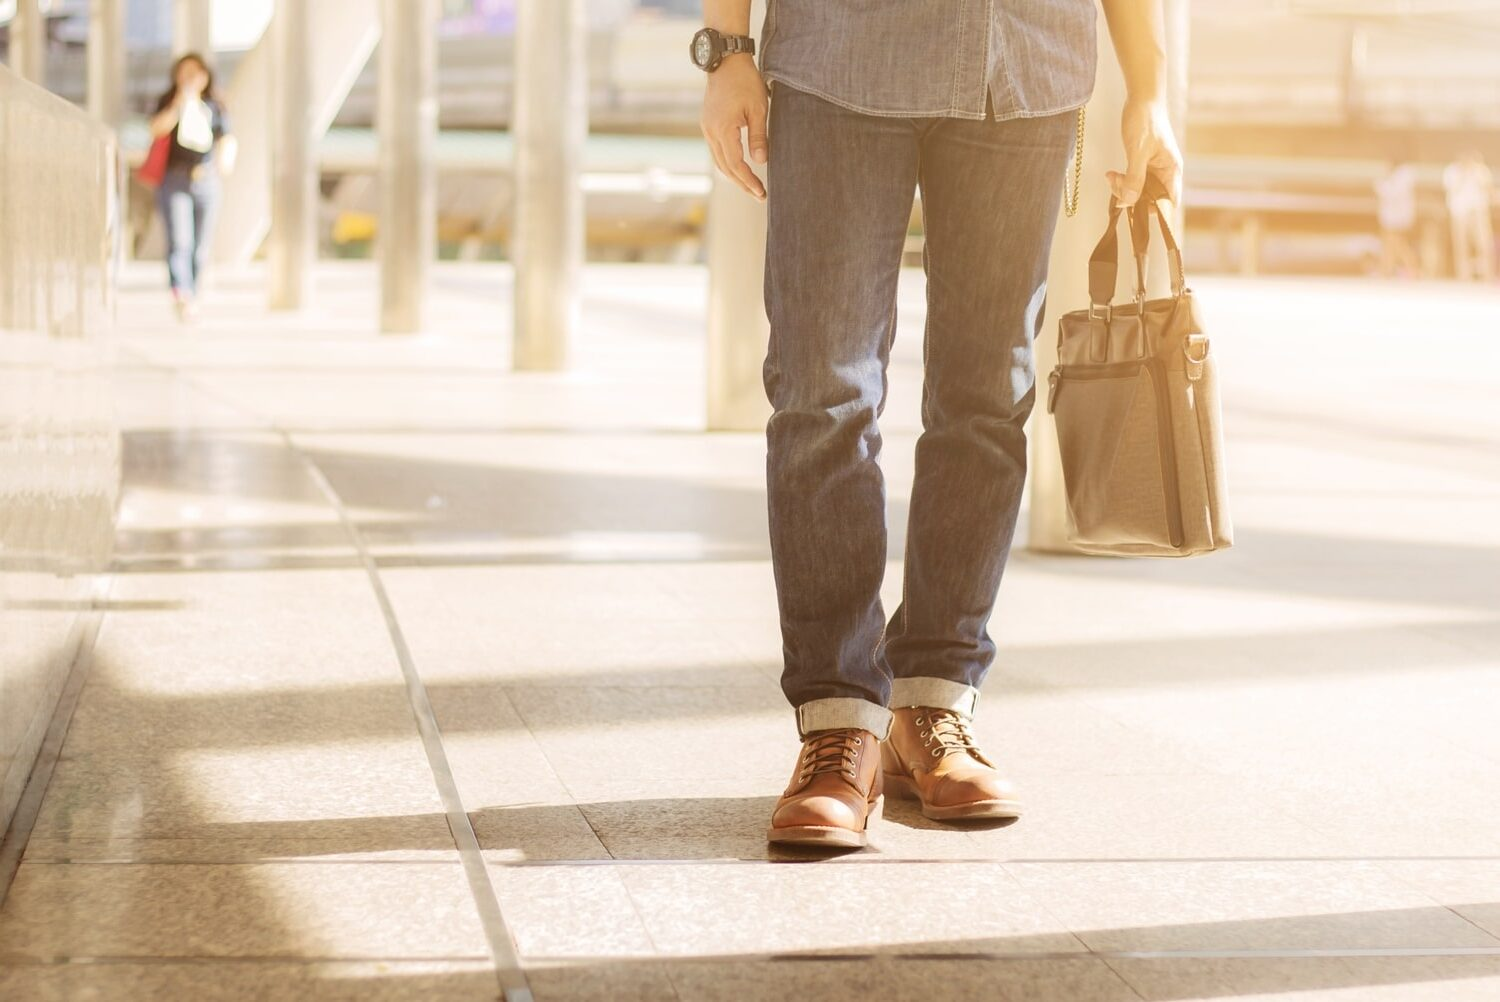 man-holding-leather-bag-in-city-T463A8M-min